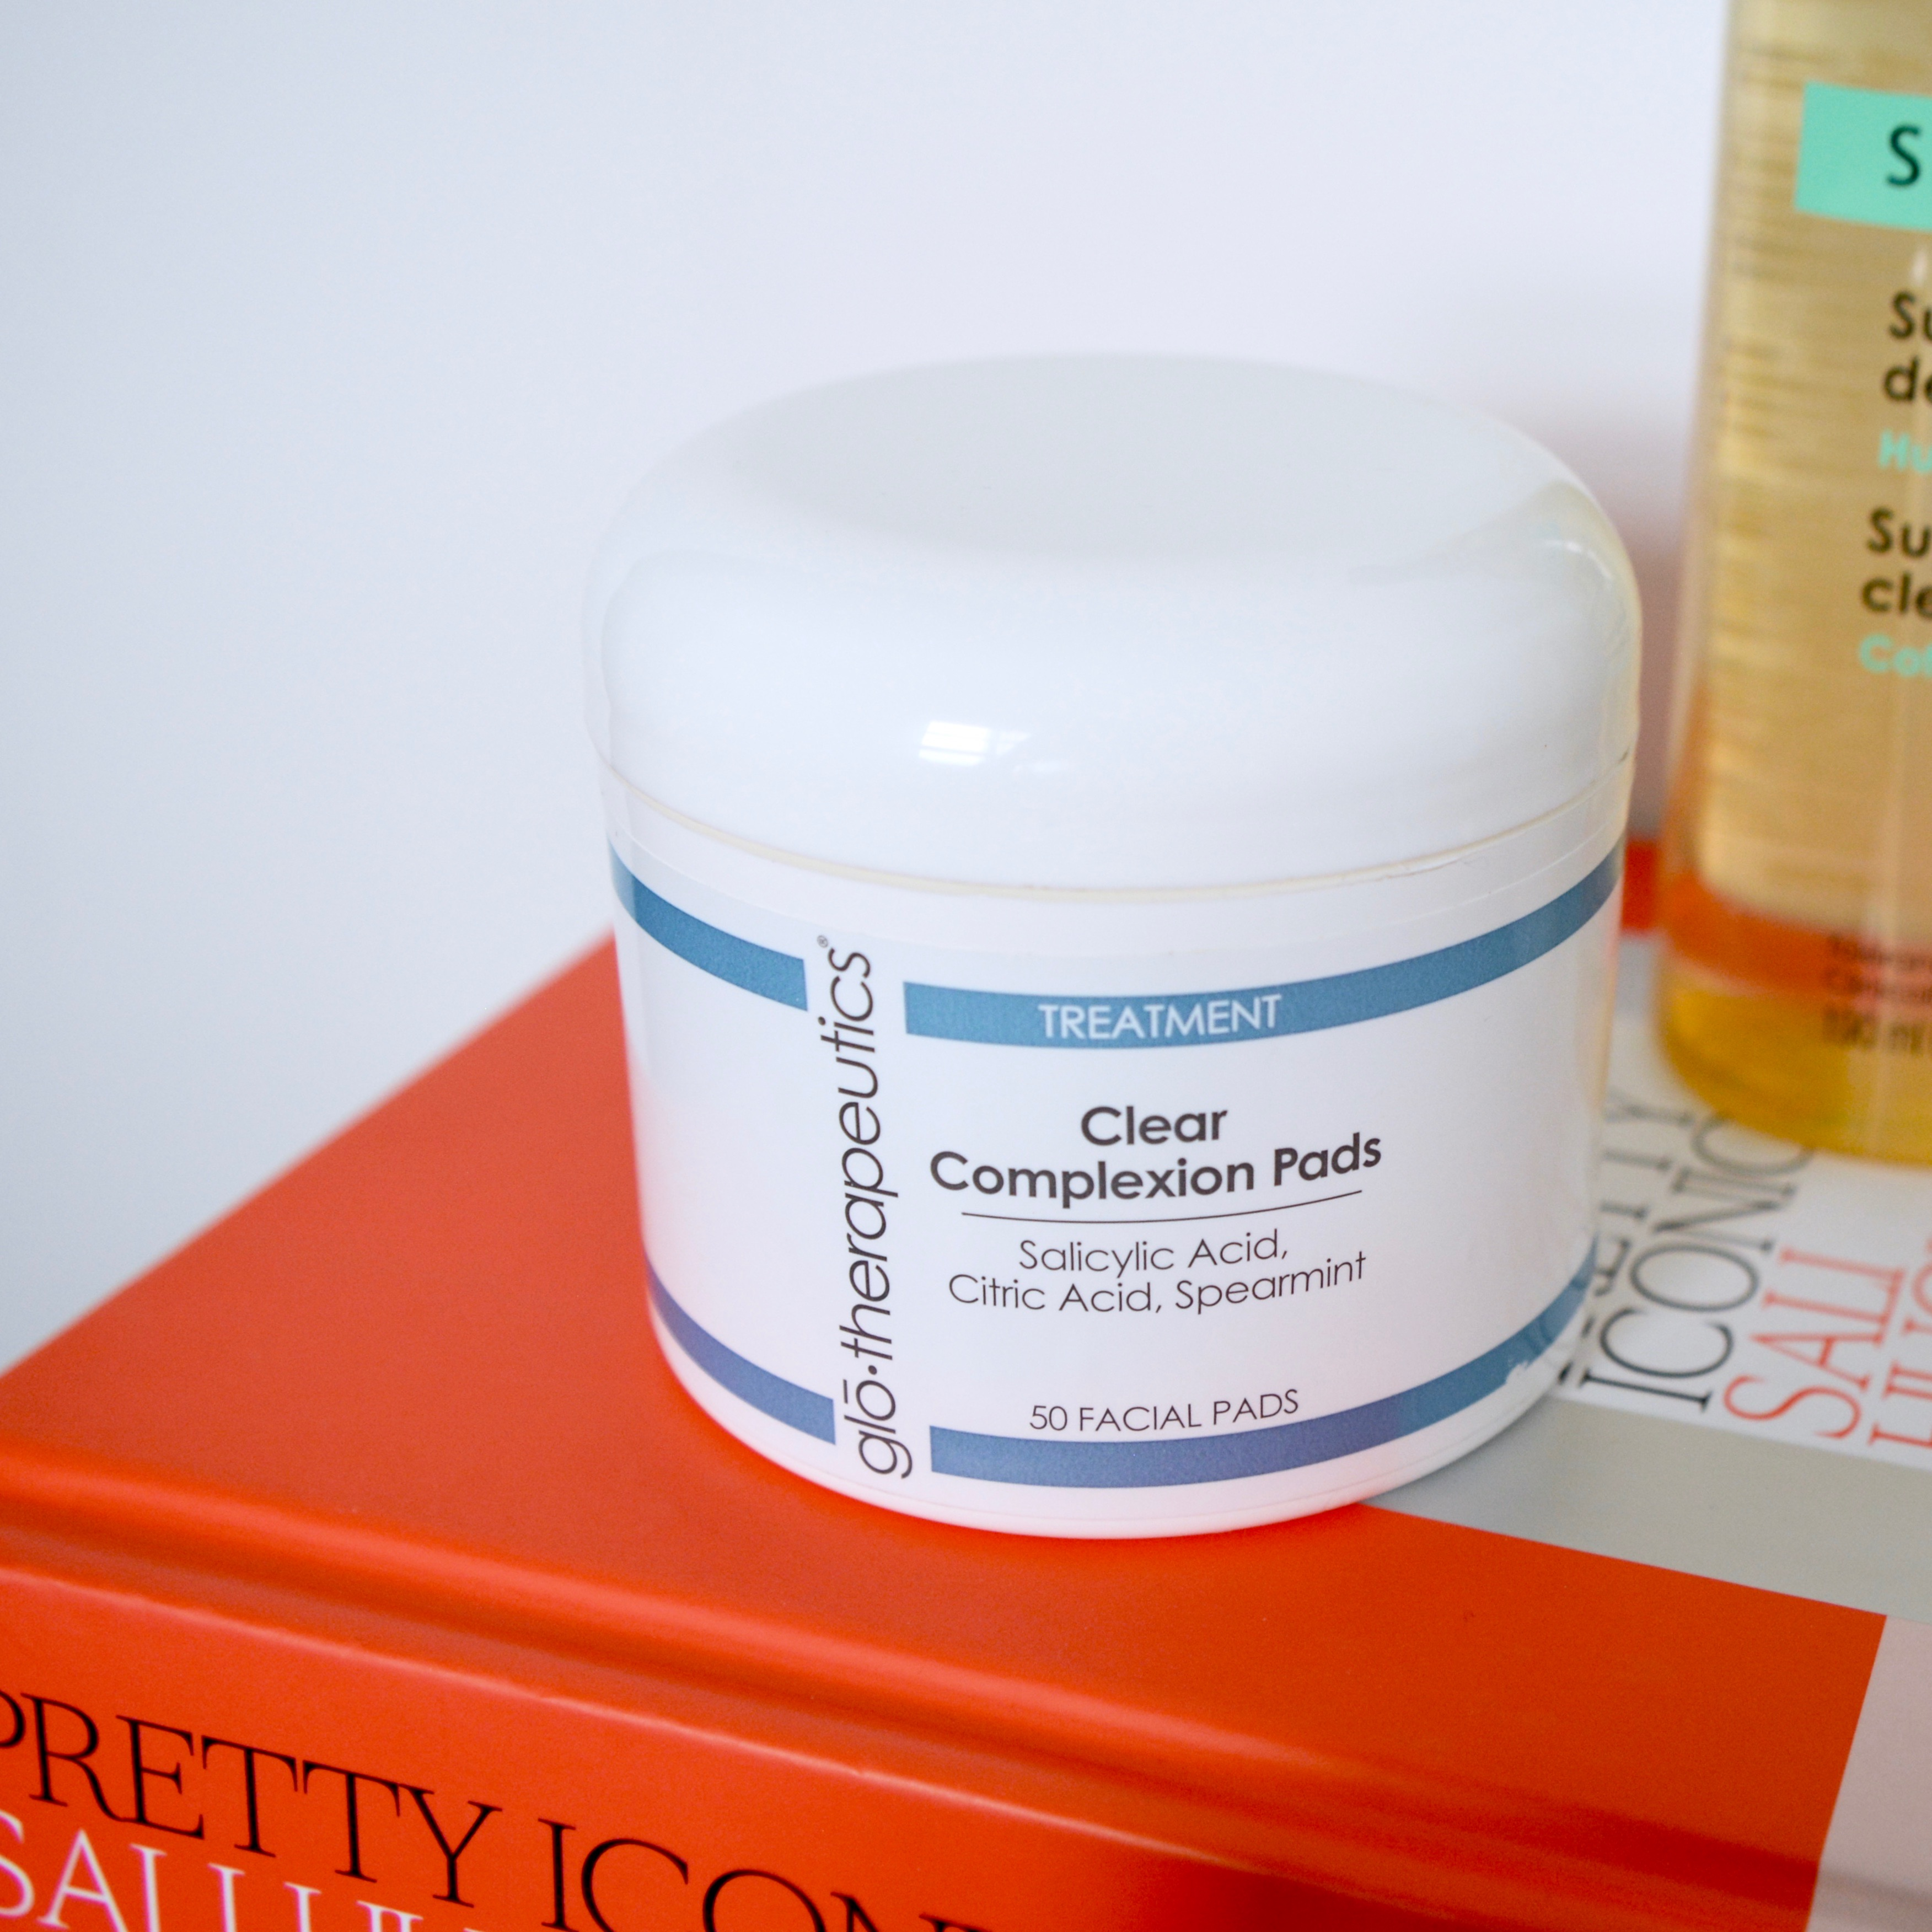 Skincare Shake Up April 17: glo-therapeutics clear complexion pads